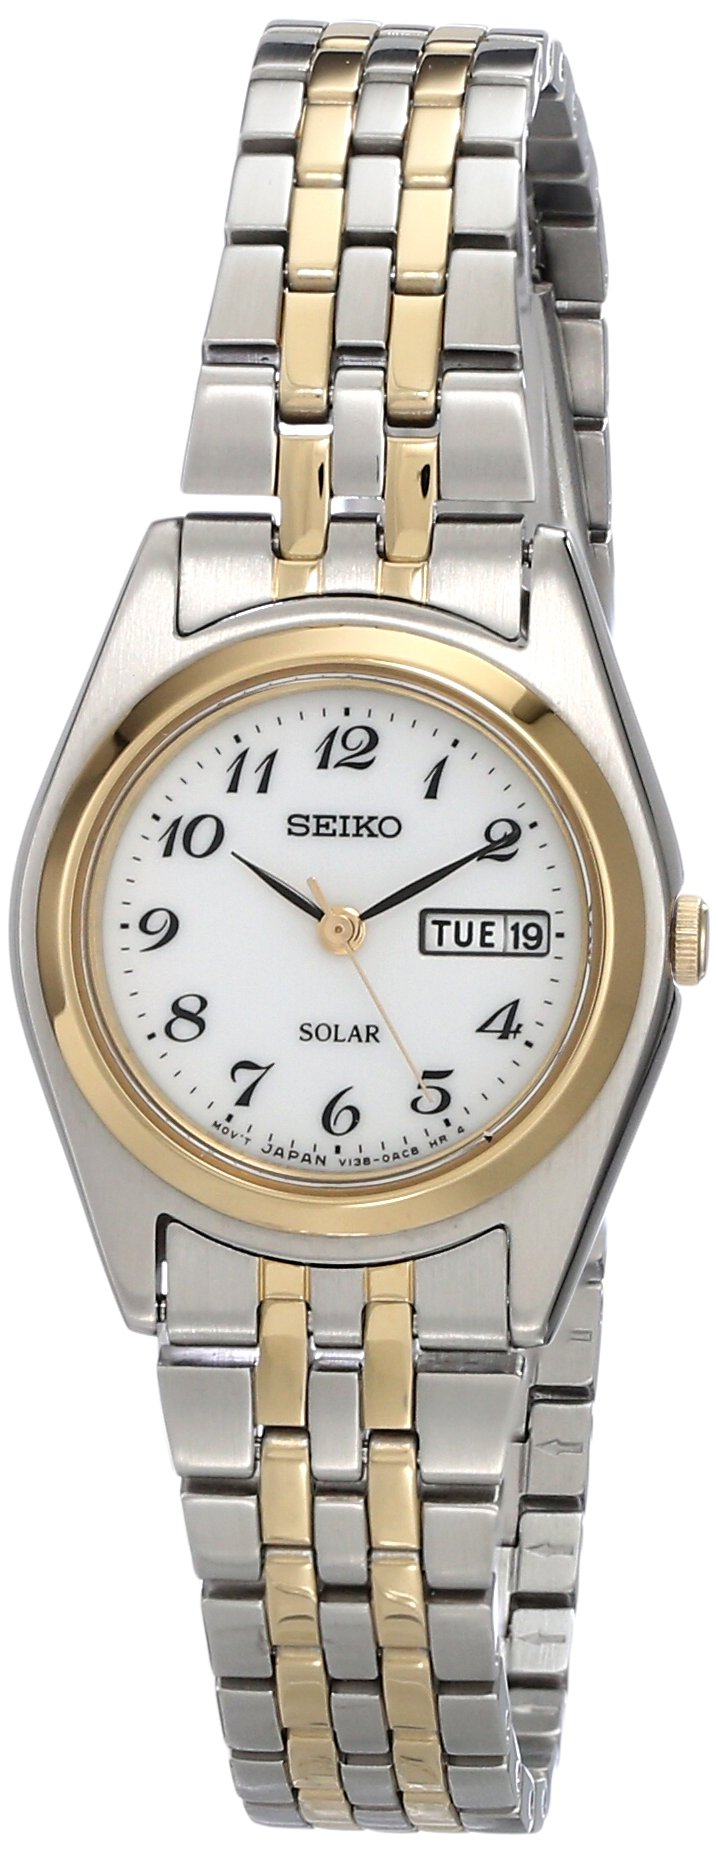 Seiko Women's SUT116 Stainless Steel Two-Tone Watch by SEIKO